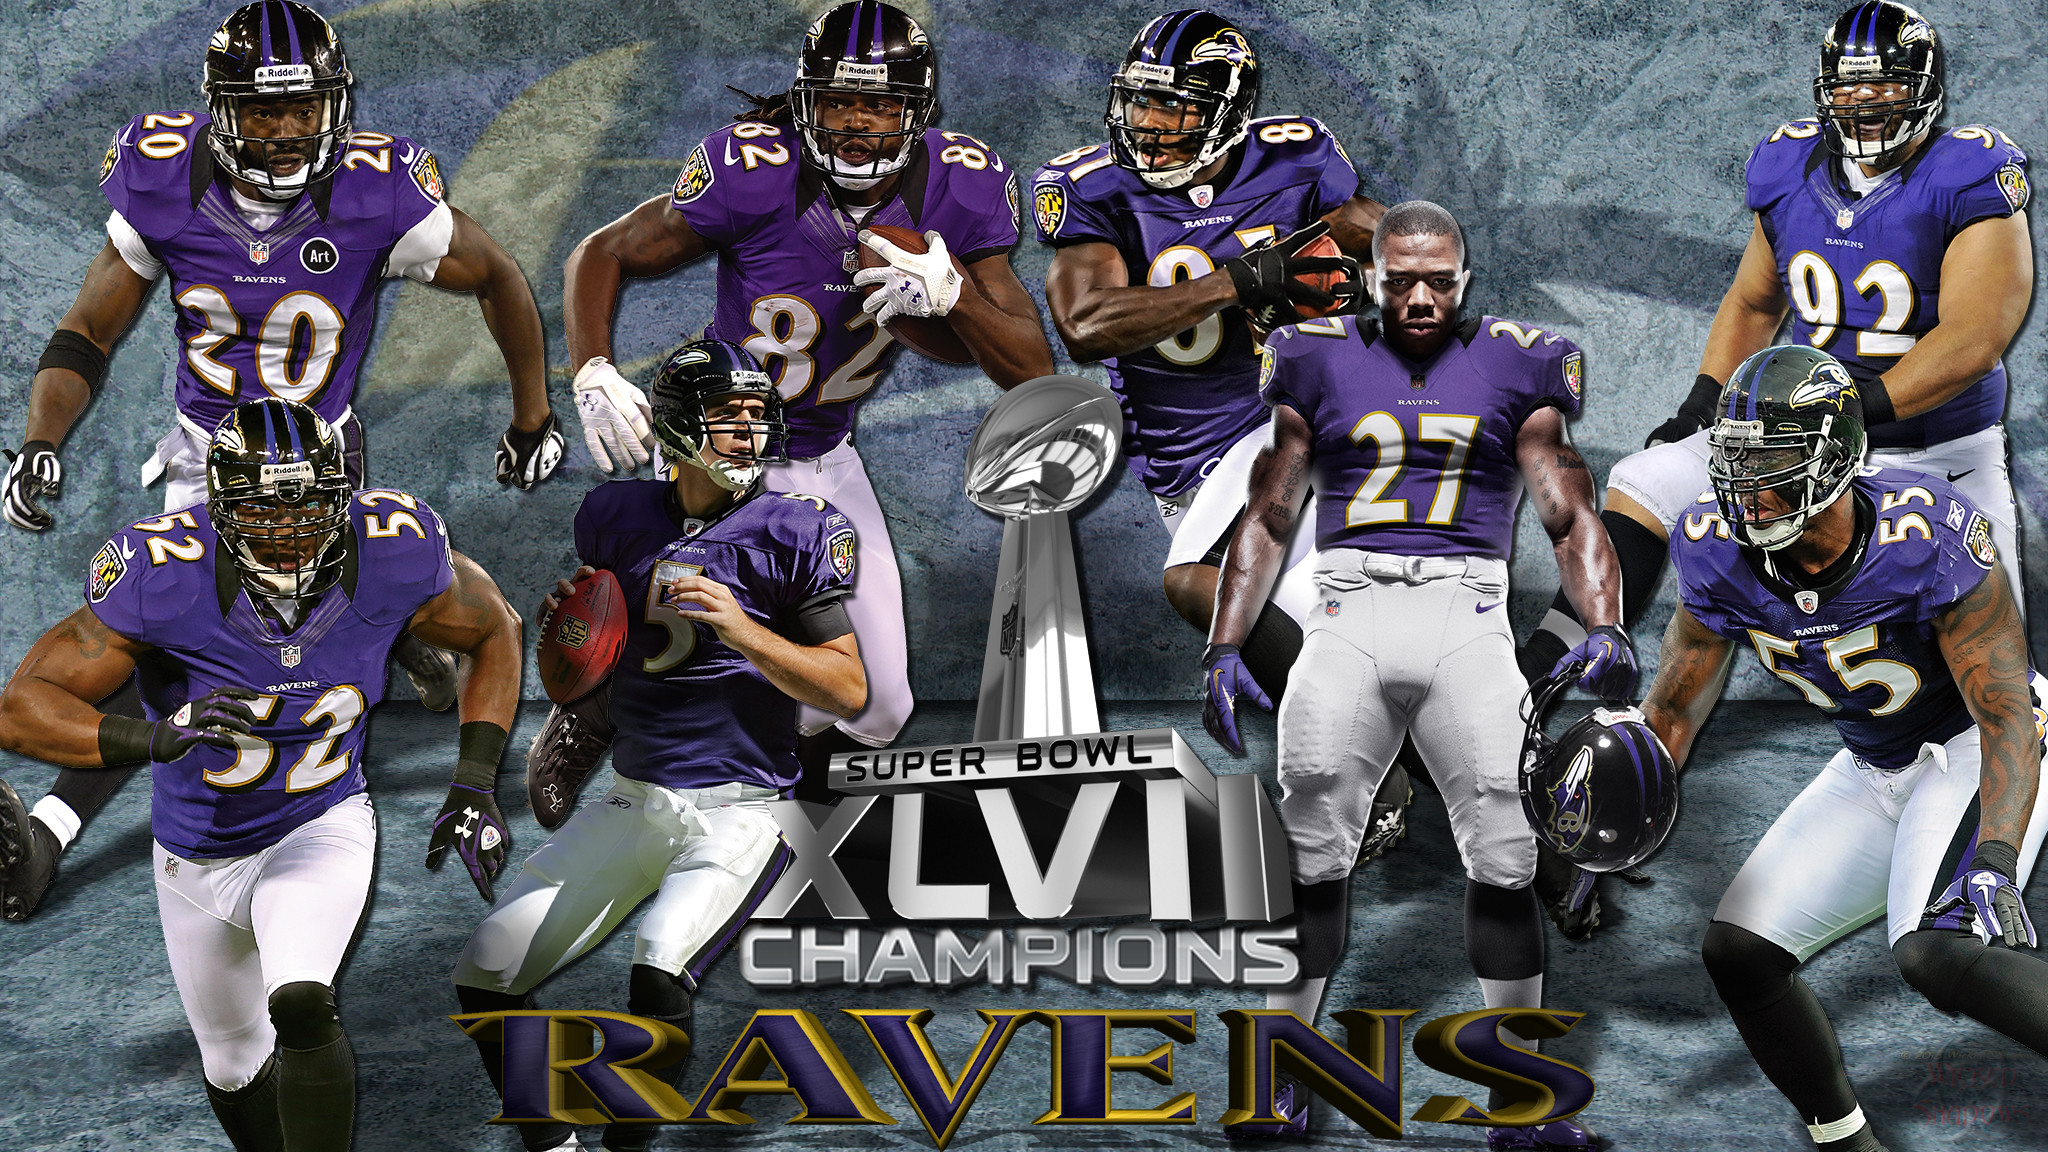 Wallpapers By Wicked Shadows: Baltimore Ravens Super Bowl XLVII .